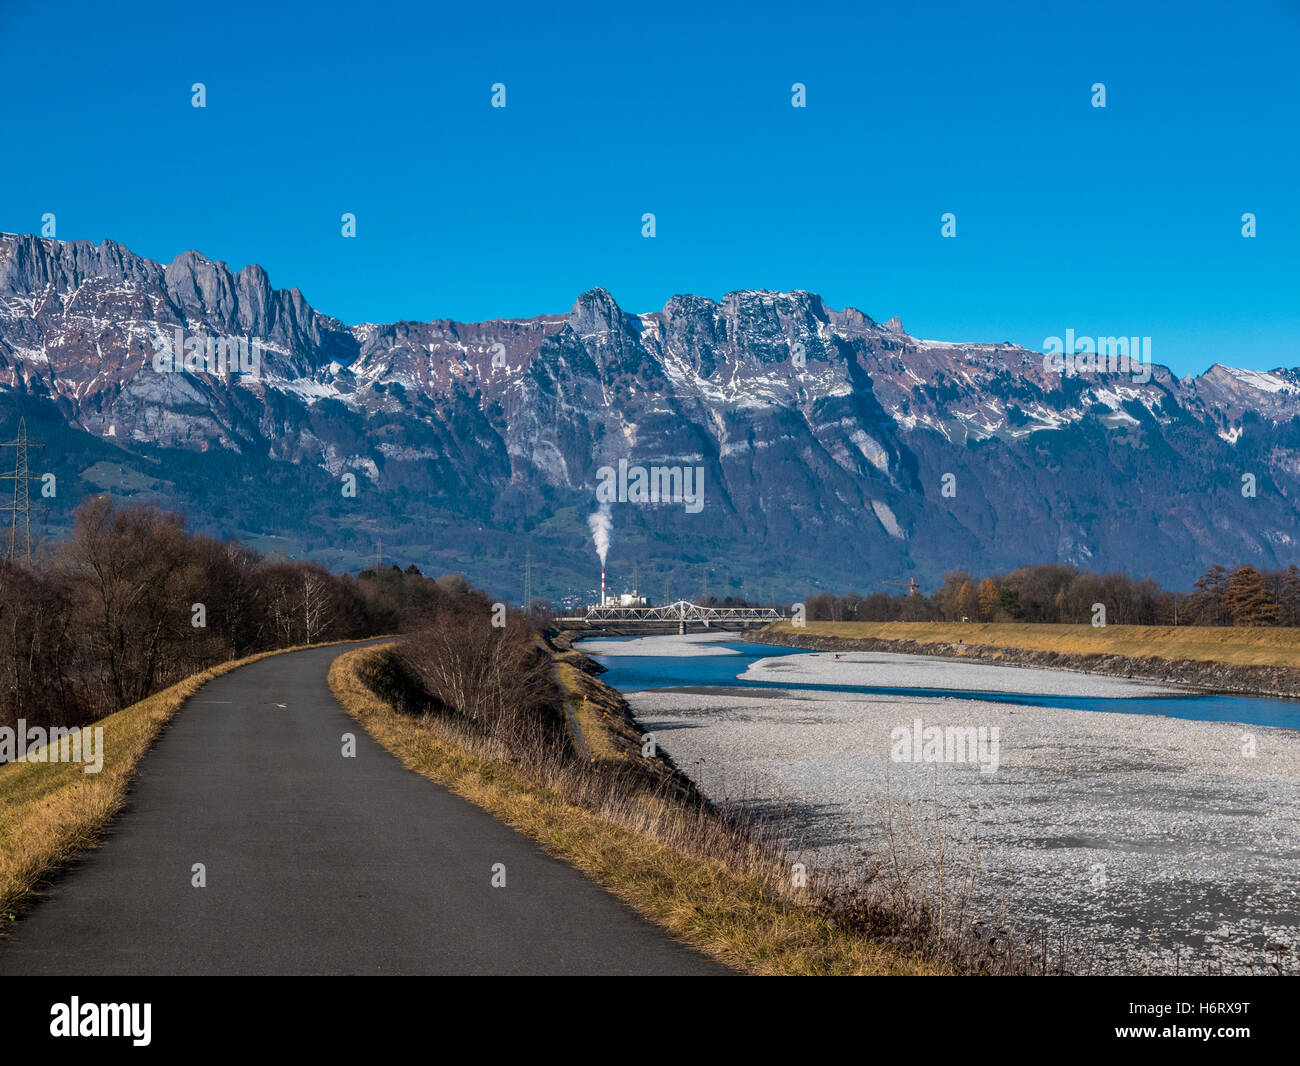 A road going along the damn of a rover - Stock Image